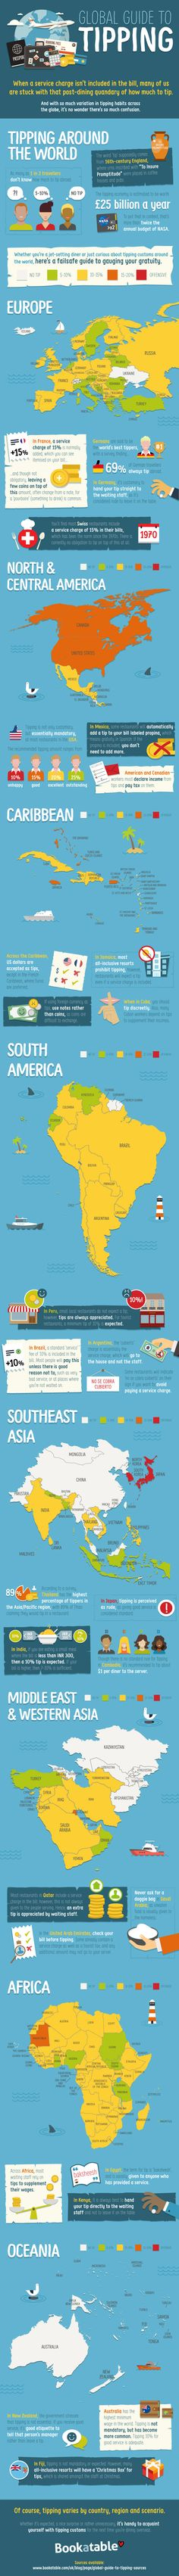 global-guide-to-tipping_53b41794dcdcc.jpg